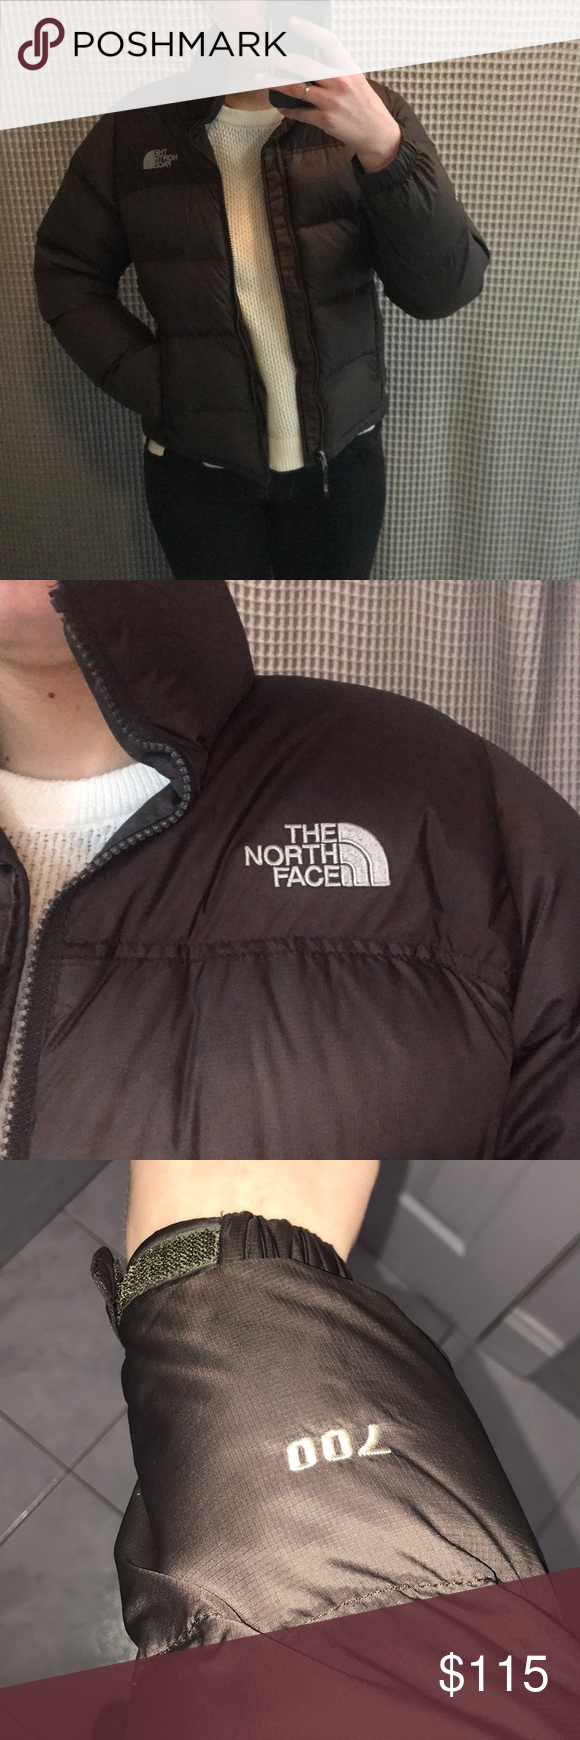 North Face Nuptse 700 Women S Puffer The North Face Women S Puffer Brown North Face [ 1740 x 580 Pixel ]